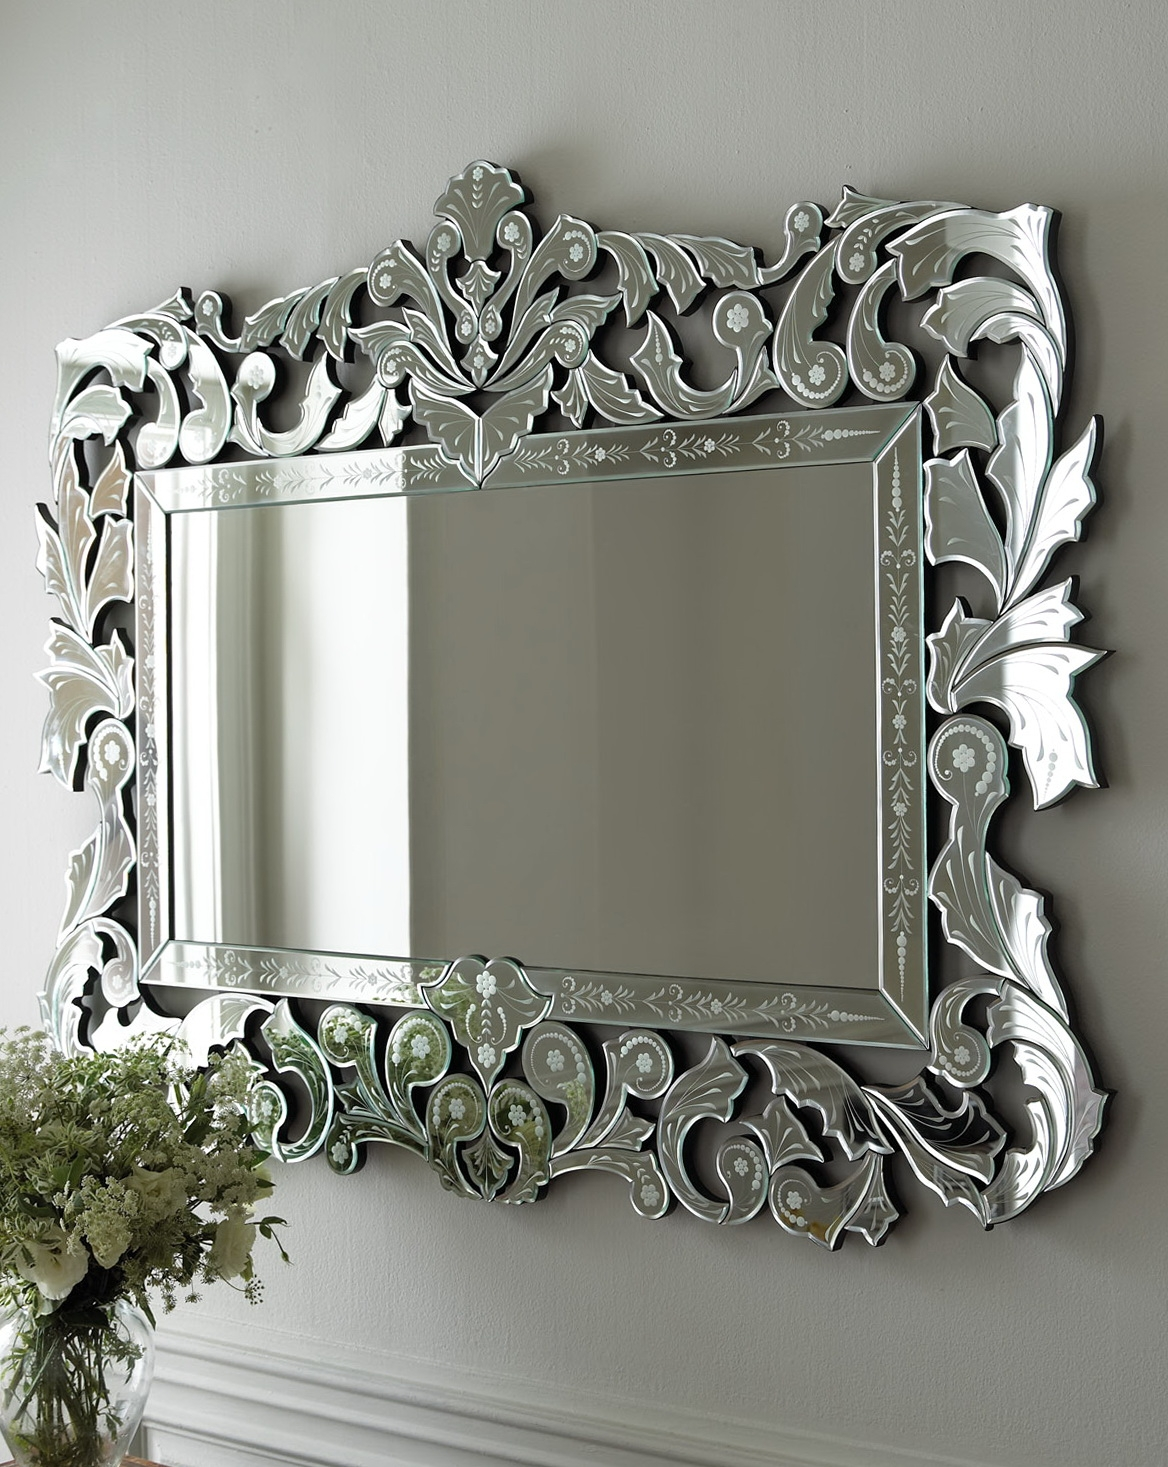 Mirrors For Sale White Framed Mirrors For Sale Mirror In The Intended For Venetian Mirror Sale (Image 9 of 15)